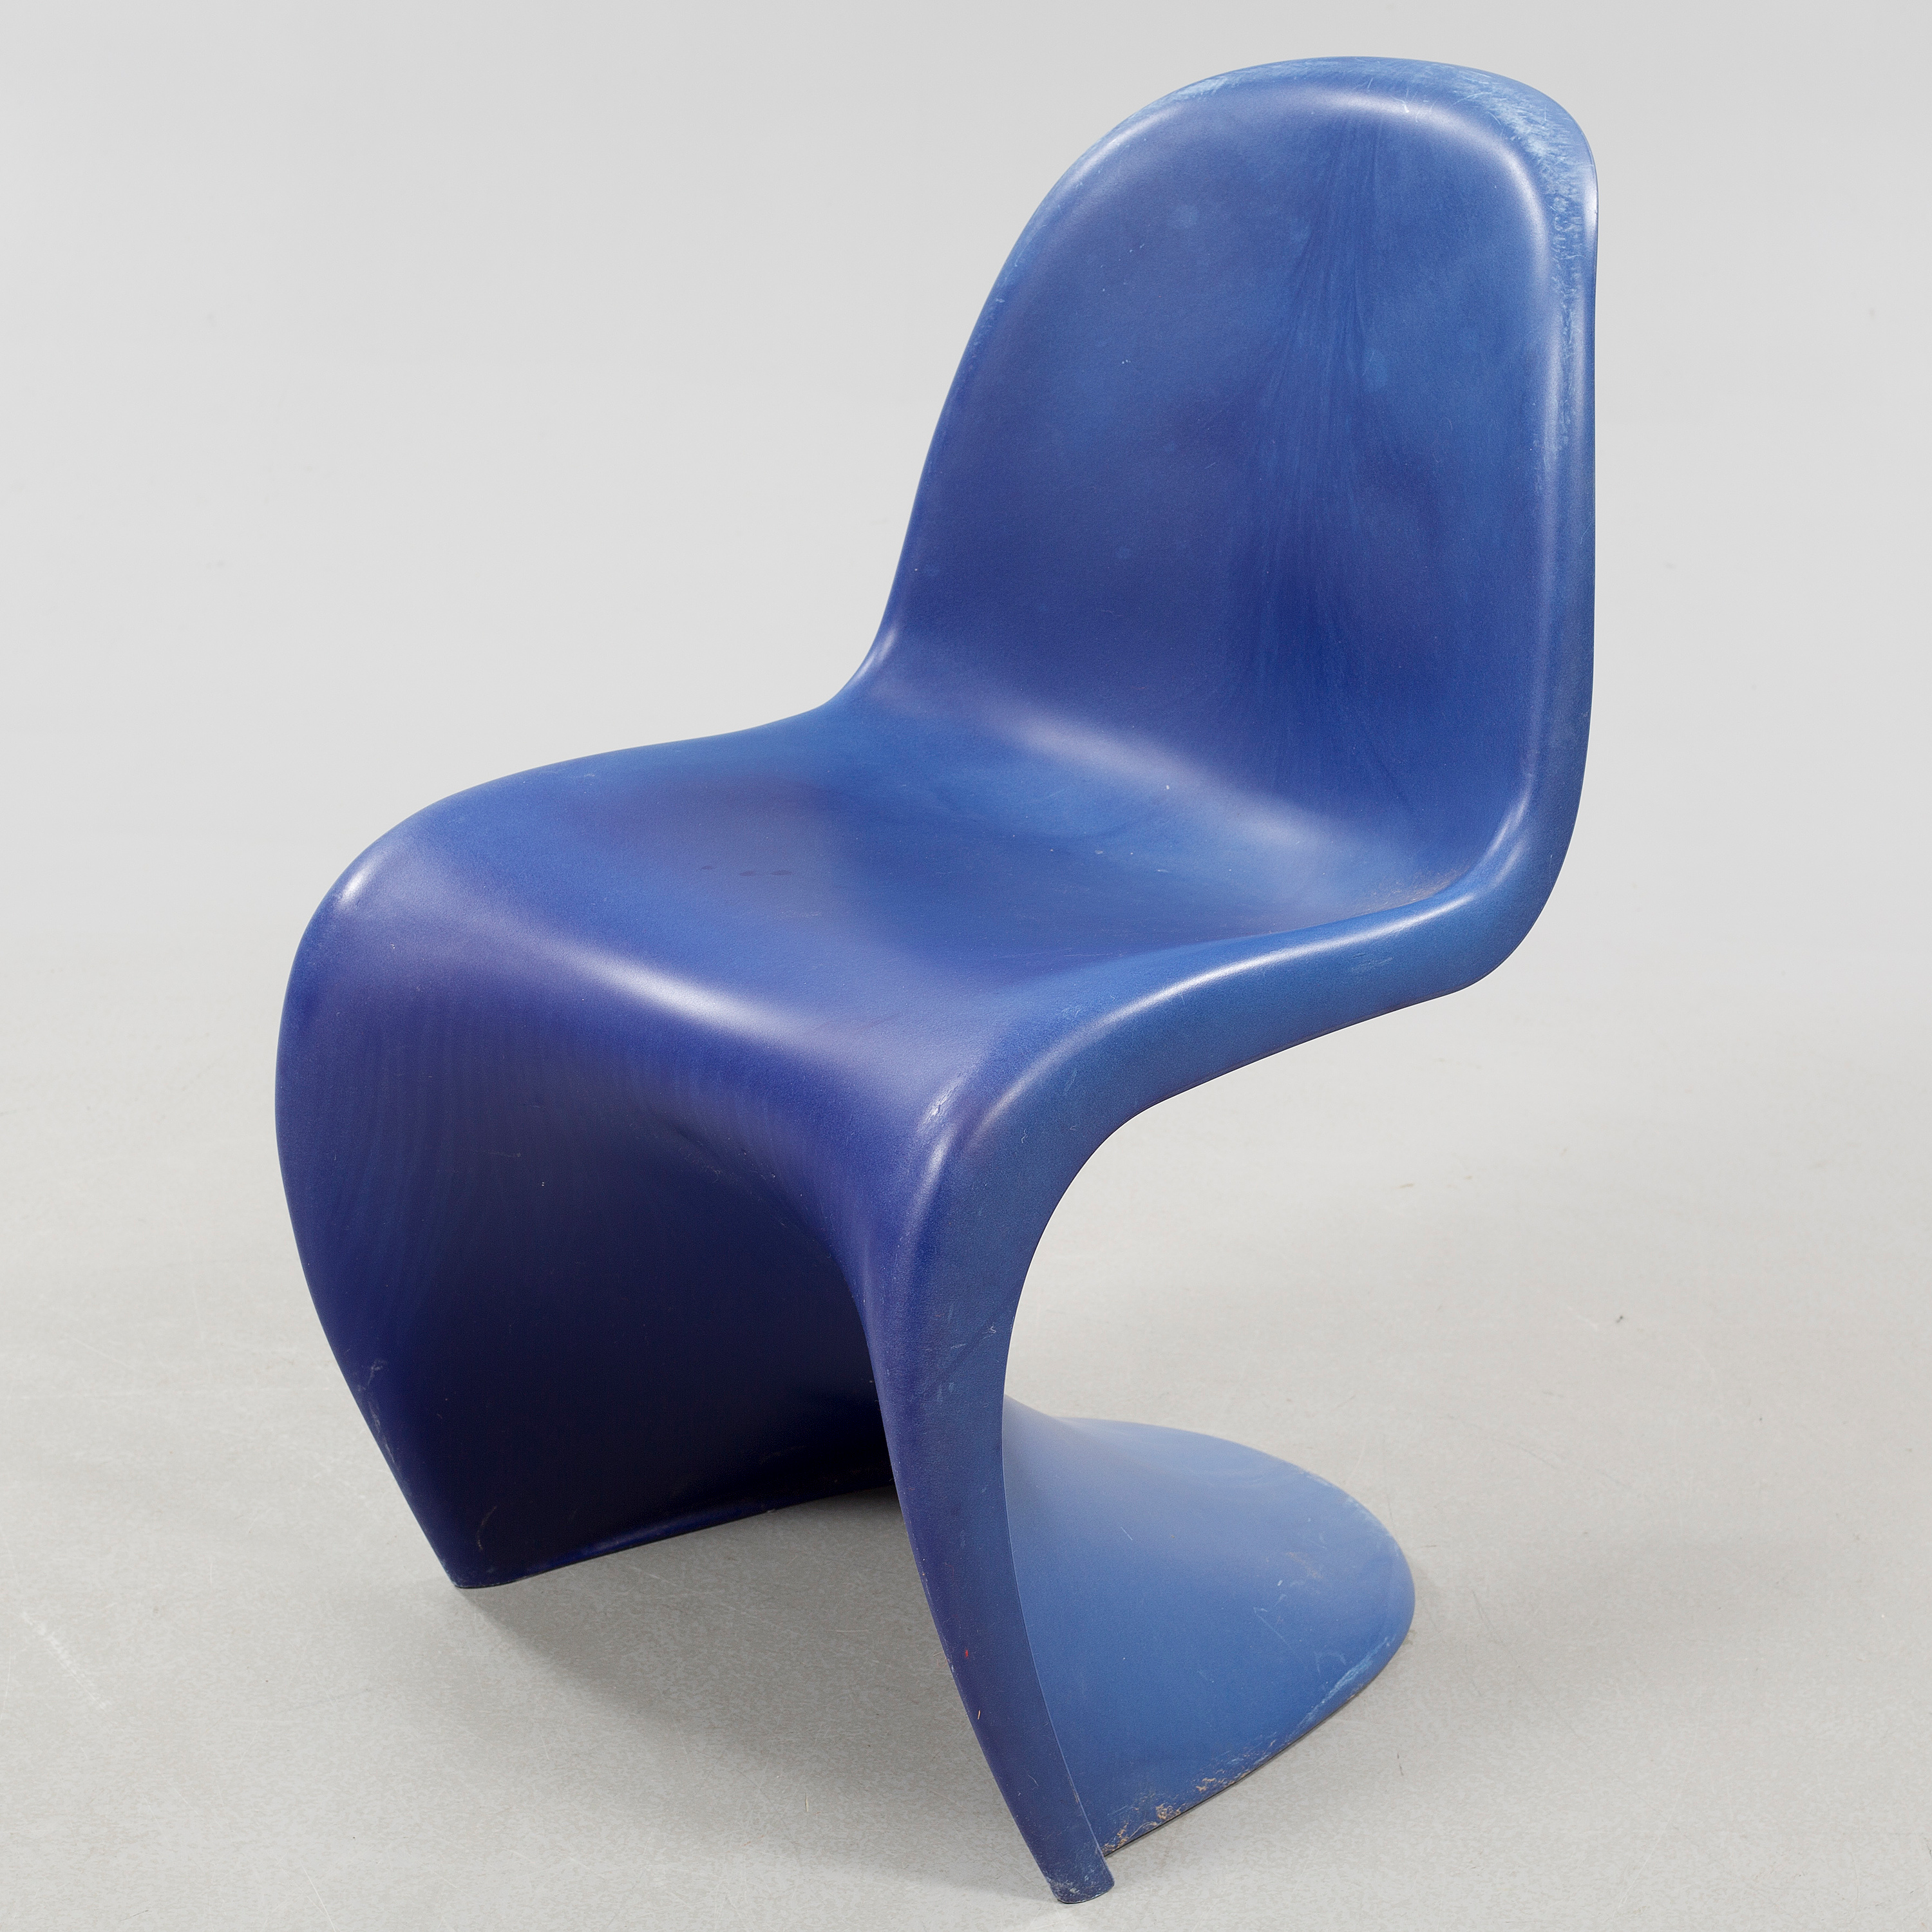 a panton chair designed by verner panton for vitra 1980 90s